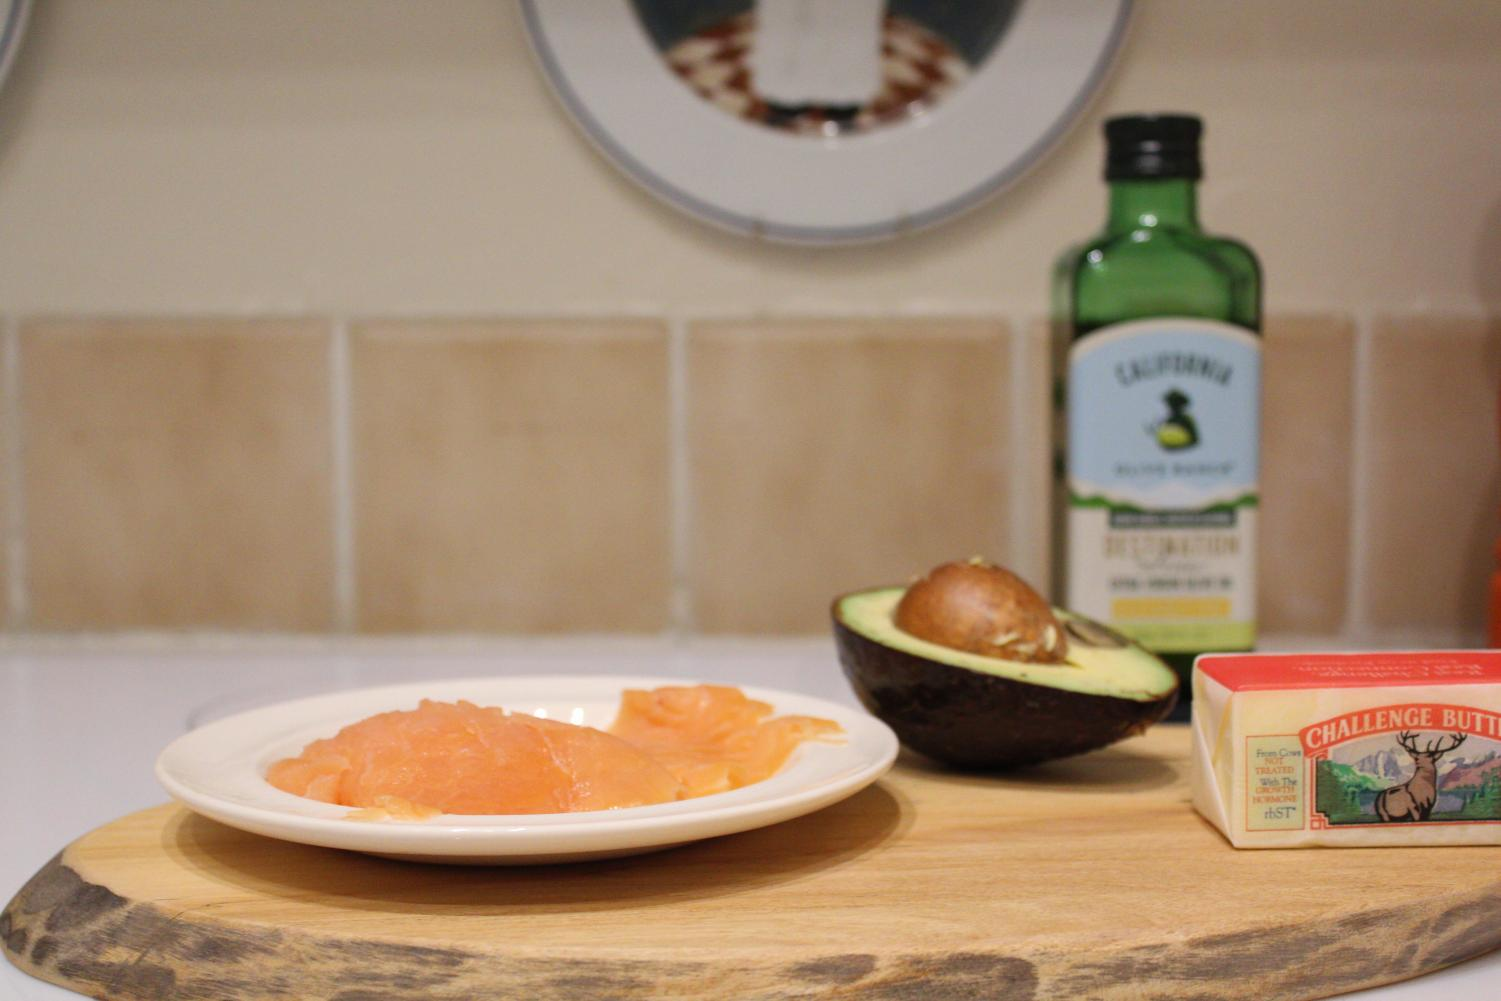 A few examples of food that are Keto; salmon, almonds, avocado, butter and olive oil.